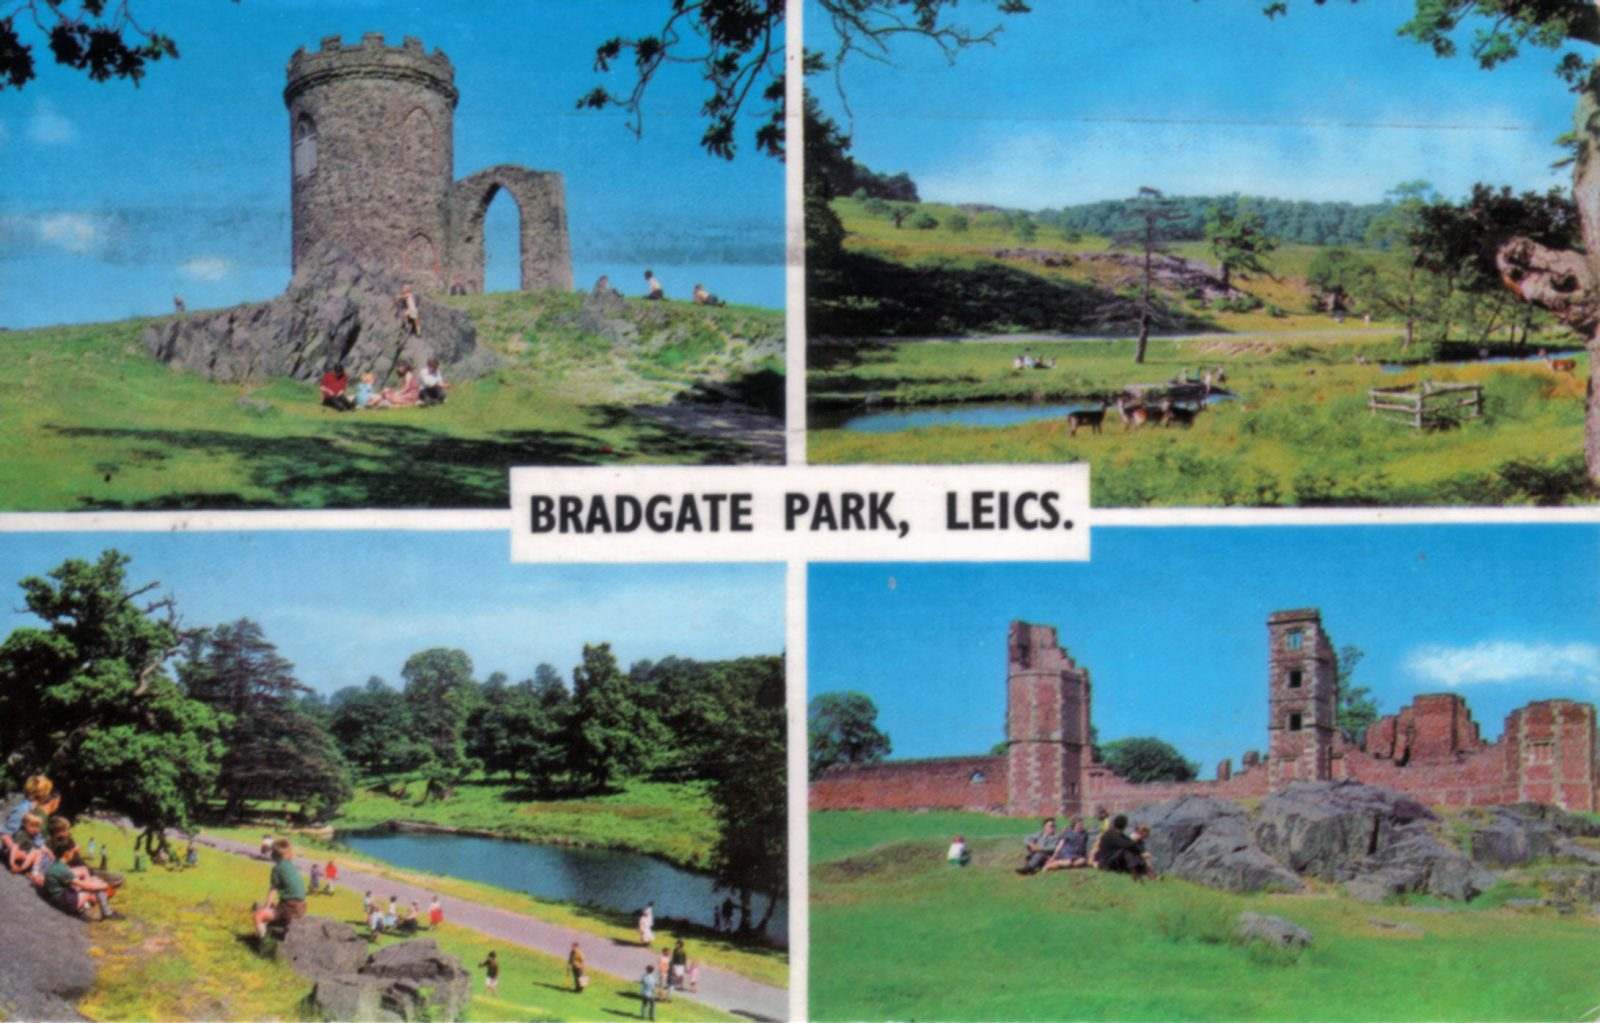 Bradgate Park, Leicester. Post 1960: Multiple views of Bradgate Park, including Old John, The ruins, Little Matlock and Deer. Posted 1971-73 (File:1218)